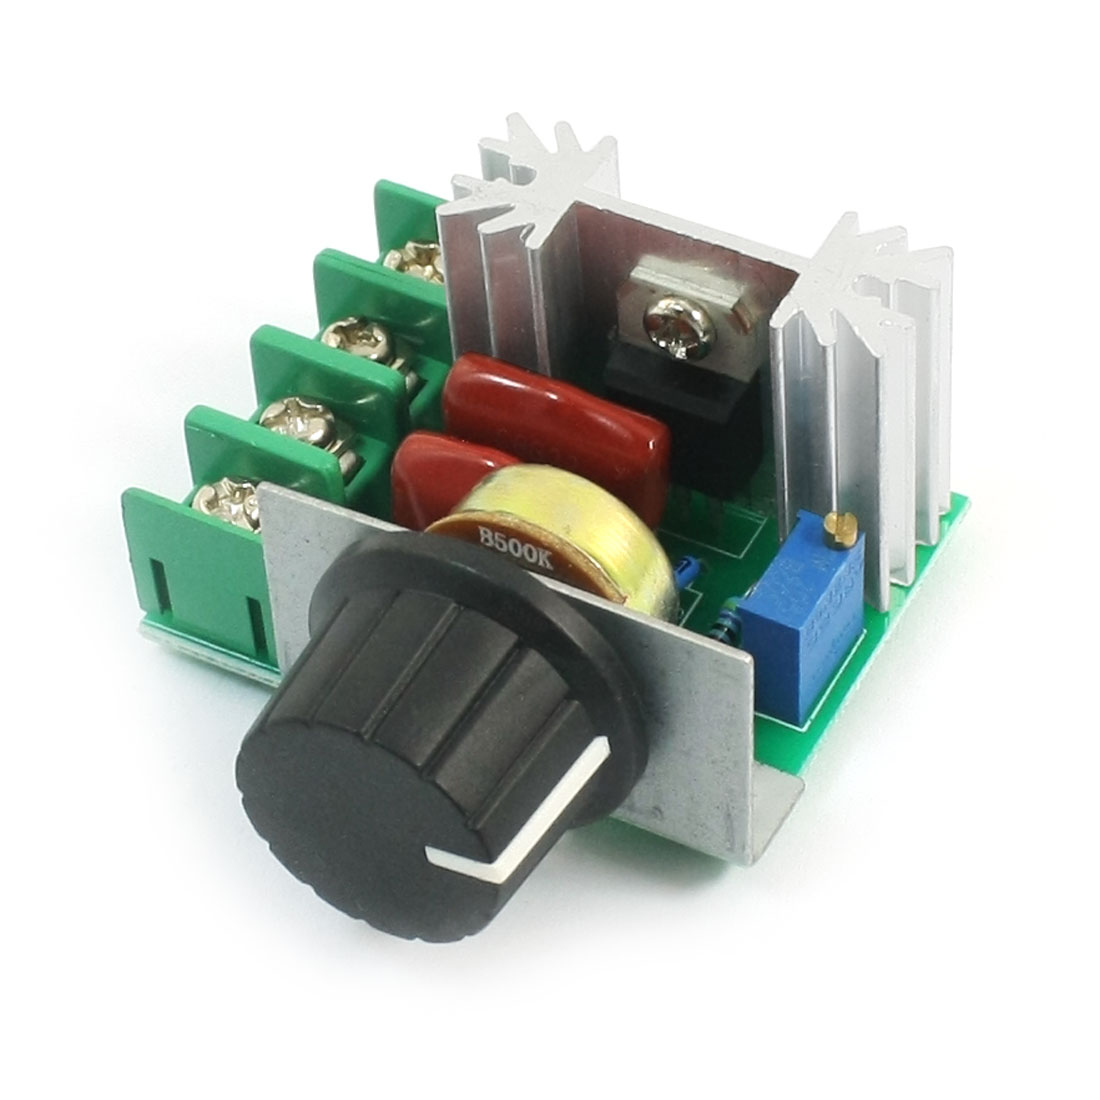 SCR Integrated Circuit Potentiometer Adjustable Voltage Regulator Speed Dimmer Controller Thermostat AC 220V 2000W